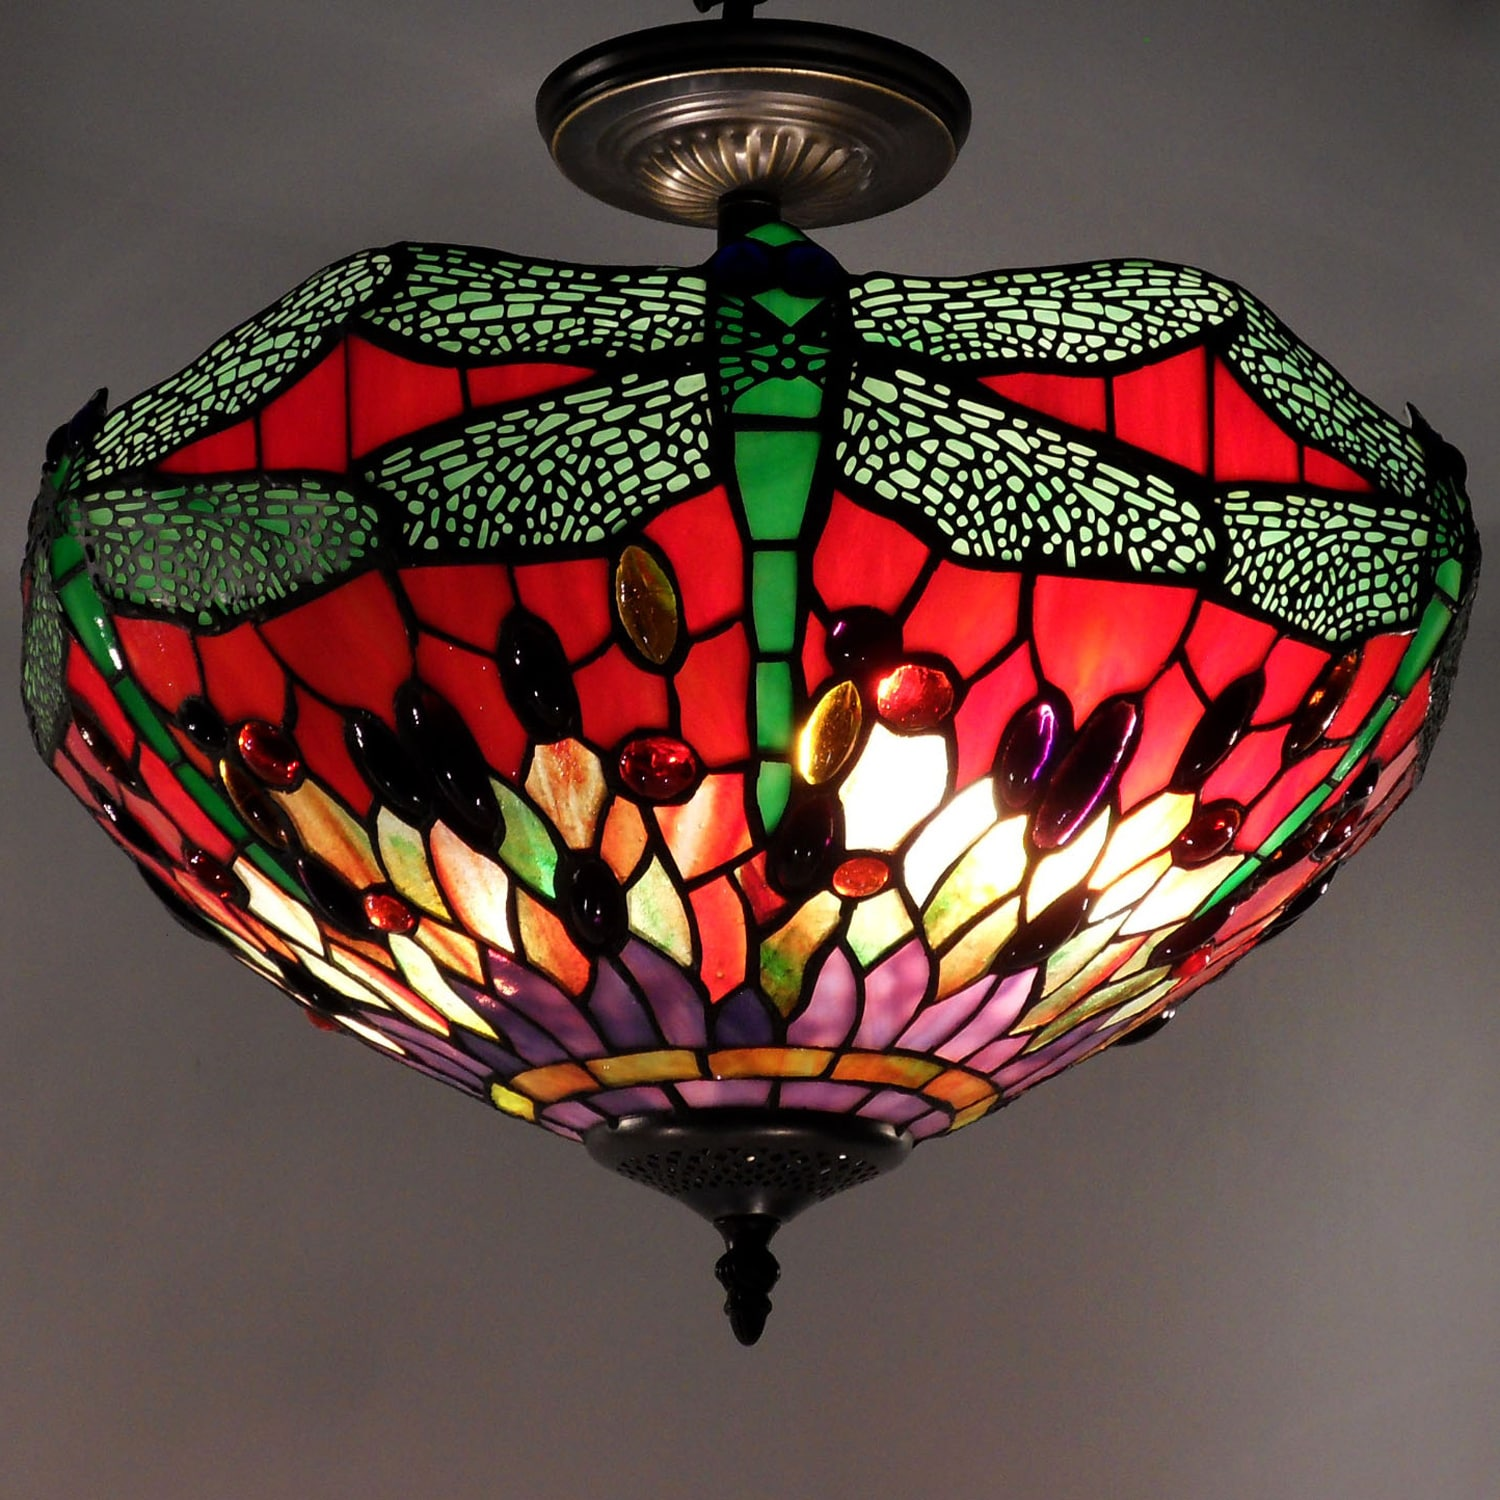 Tiffany Style Dragonfly Ceiling Lamp 11540989